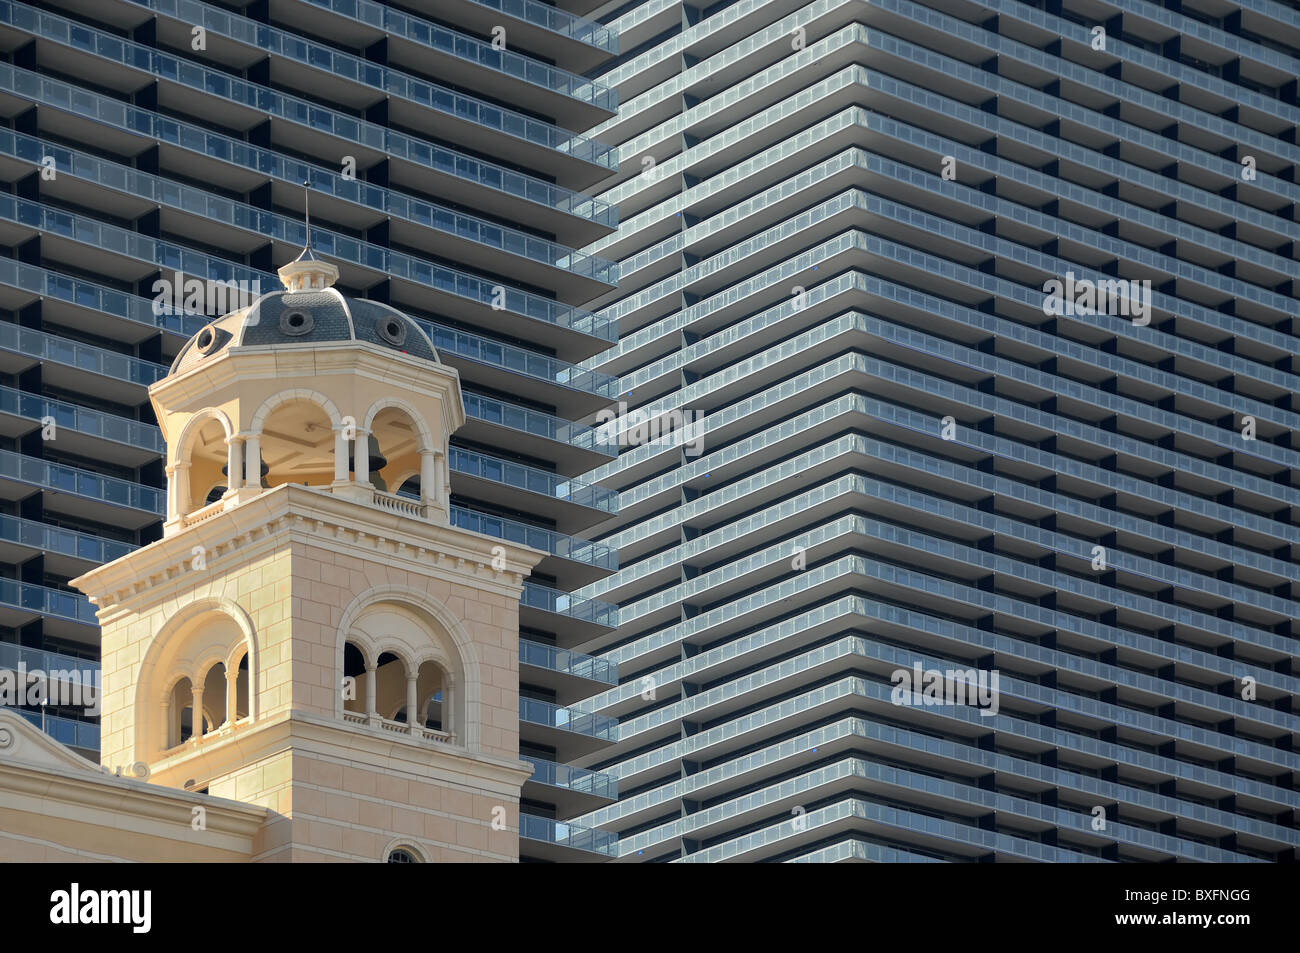 City Center is a massive collection of hotels, up-market shops and entertainment venues, and was opened in 2010 - Stock Image